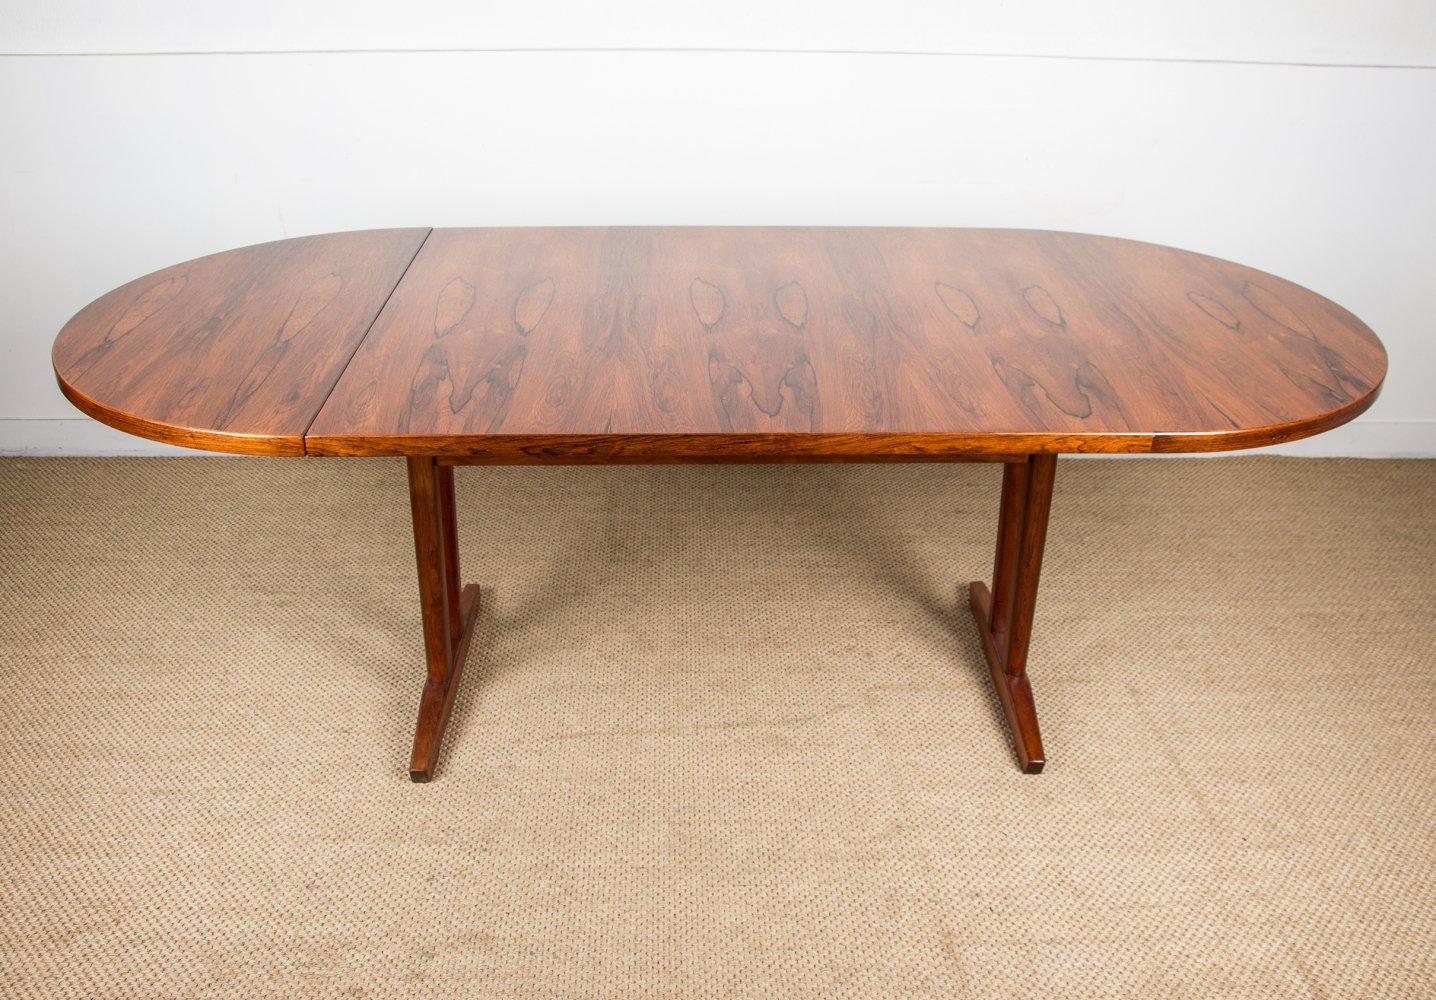 Large Scandinavian Oval Dining Table in Brazilian Rosewood